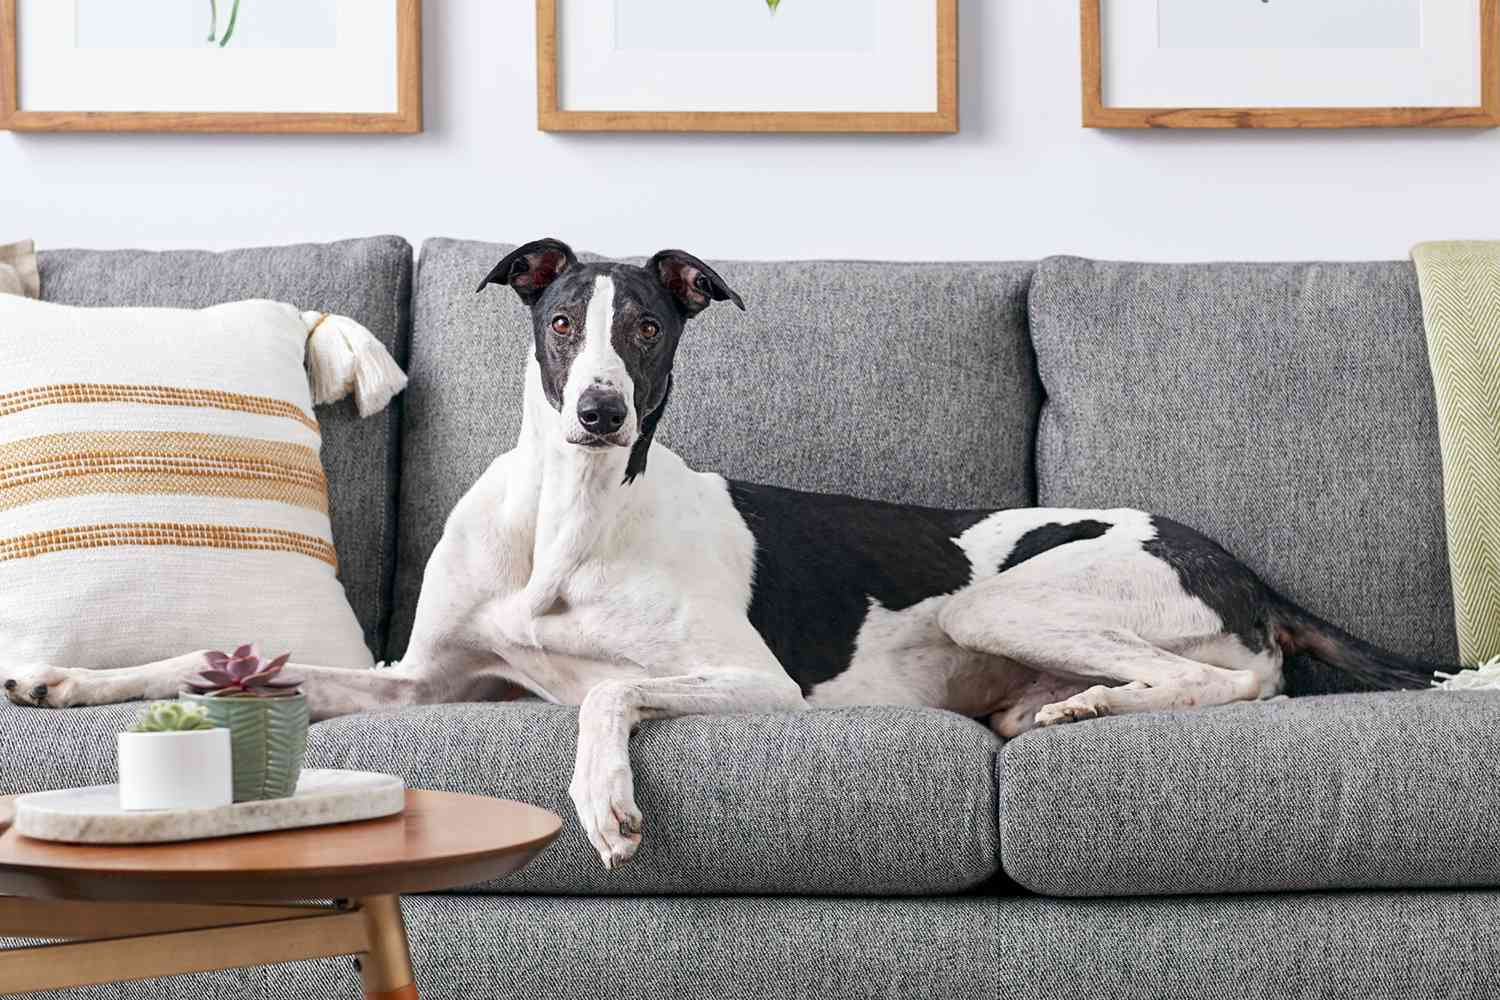 A Greyhound named Puzzle